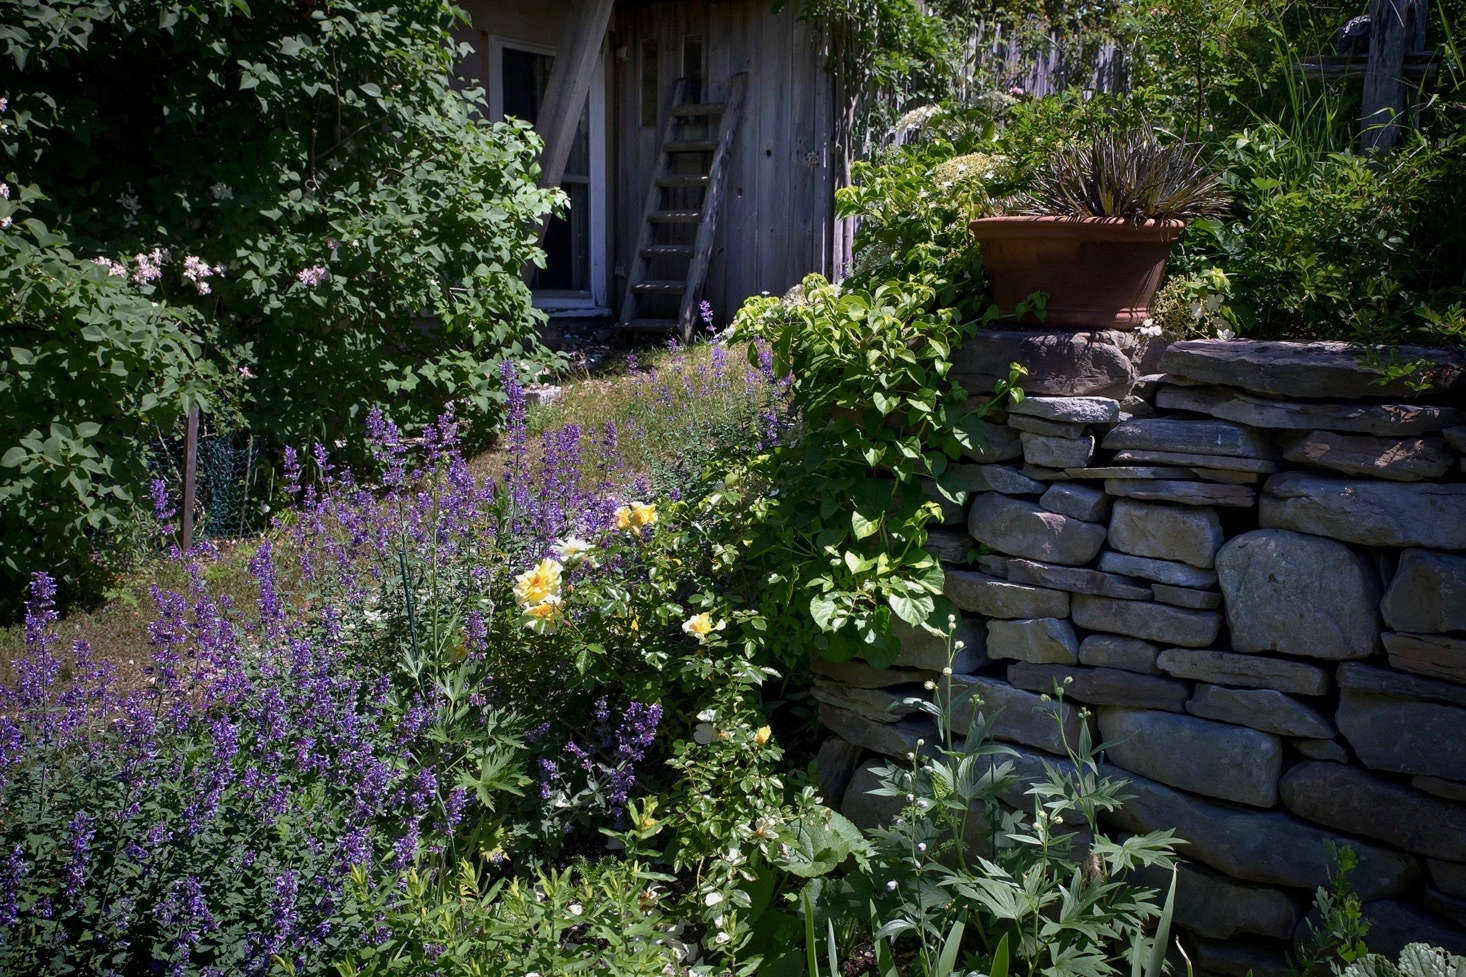 a yellow Leverkusen rose contrasts beautifully with purple Nepeta 'Six Hills Giant' against the backdrop of a dry-stacked wall. Photograph by Justine Hand.